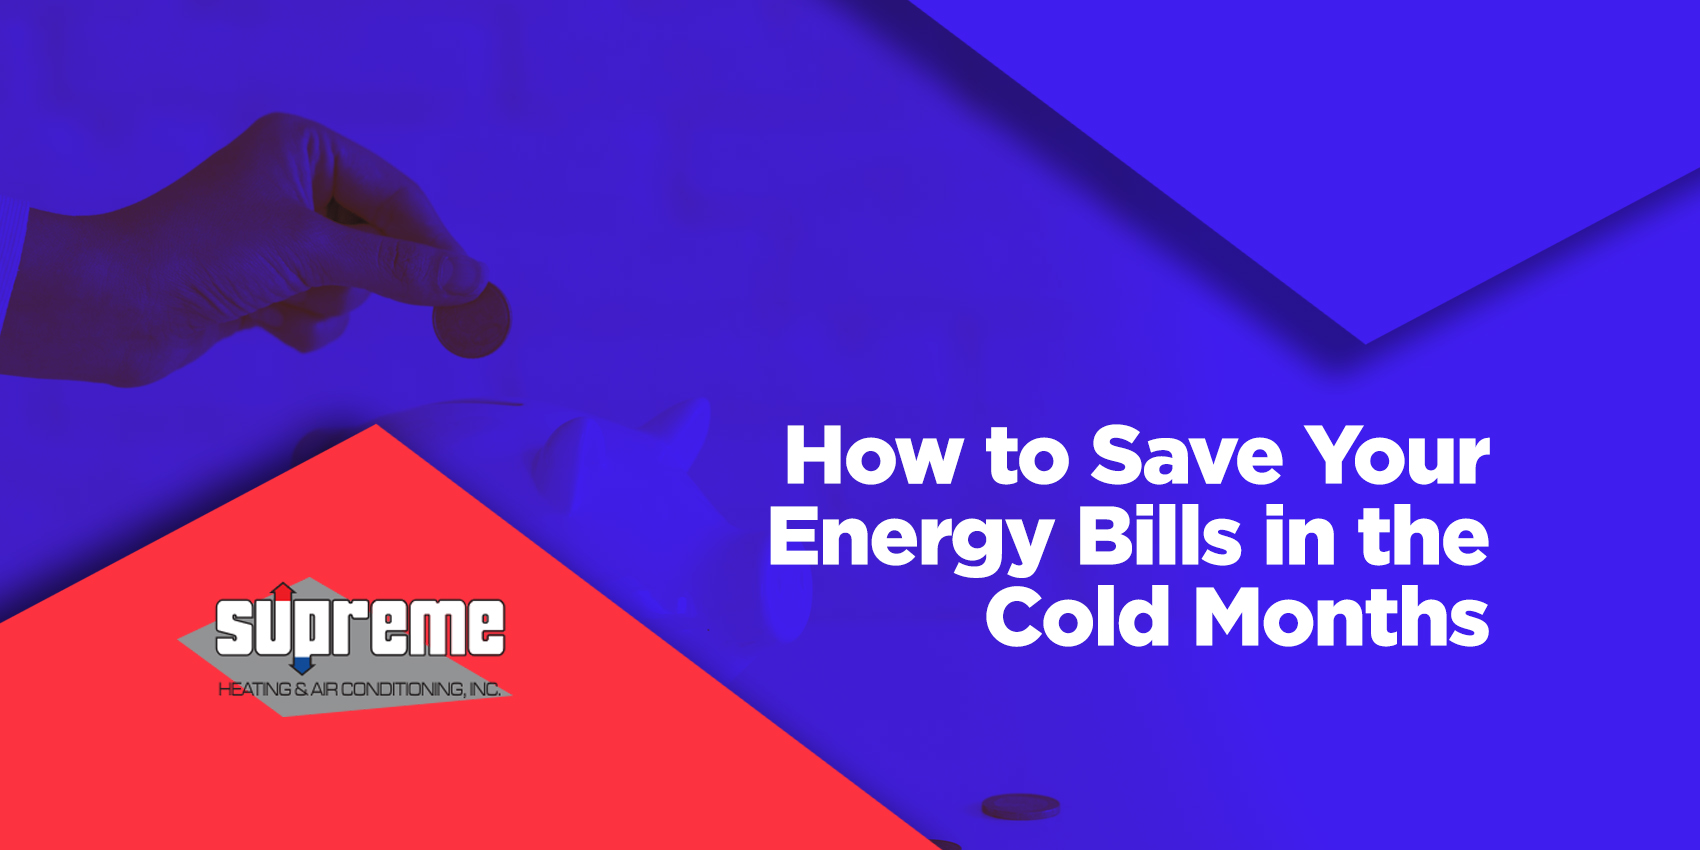 How to Save Your Energy Bills in the Cold Months